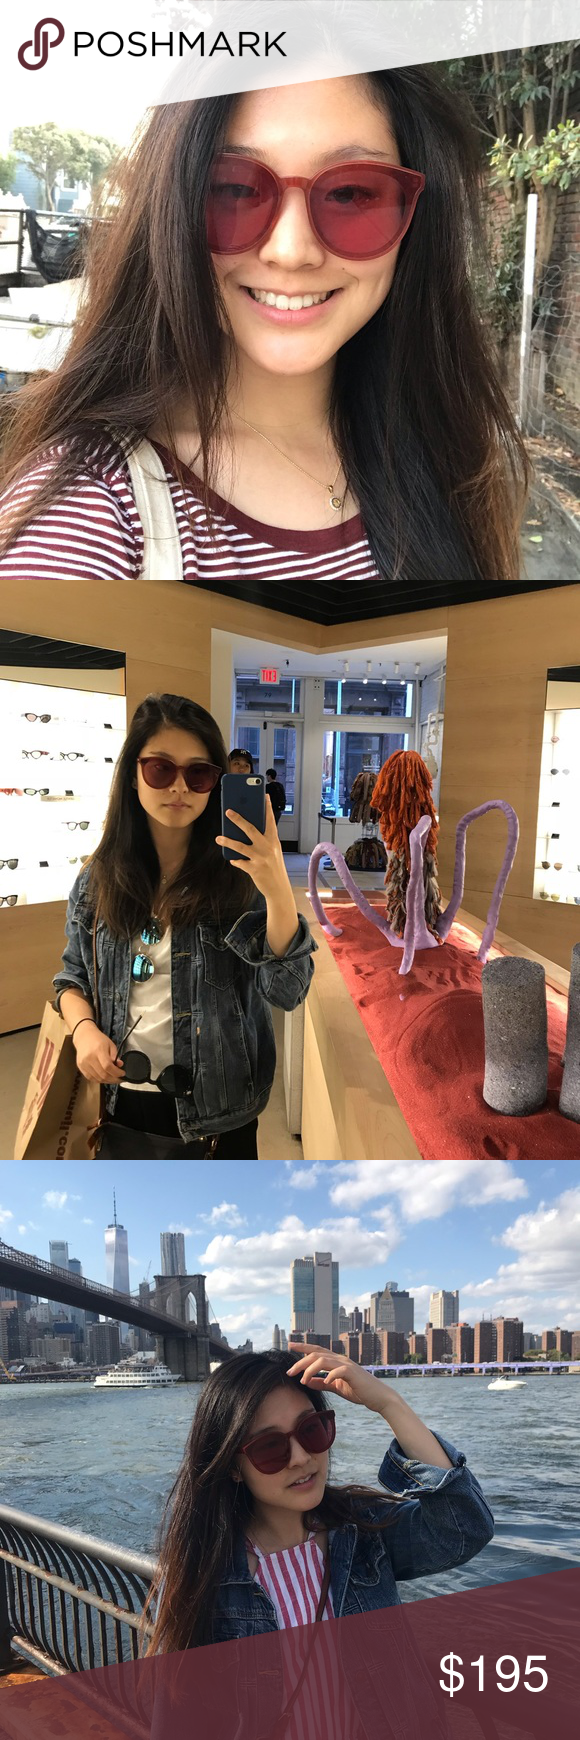 39f8f0da7f18 Black Peter RD1 in RED Mulled wine colored sunglasses in the cutest wide  acetate frame! Almost as brand new. Original case and wiper included. Gentle  ...